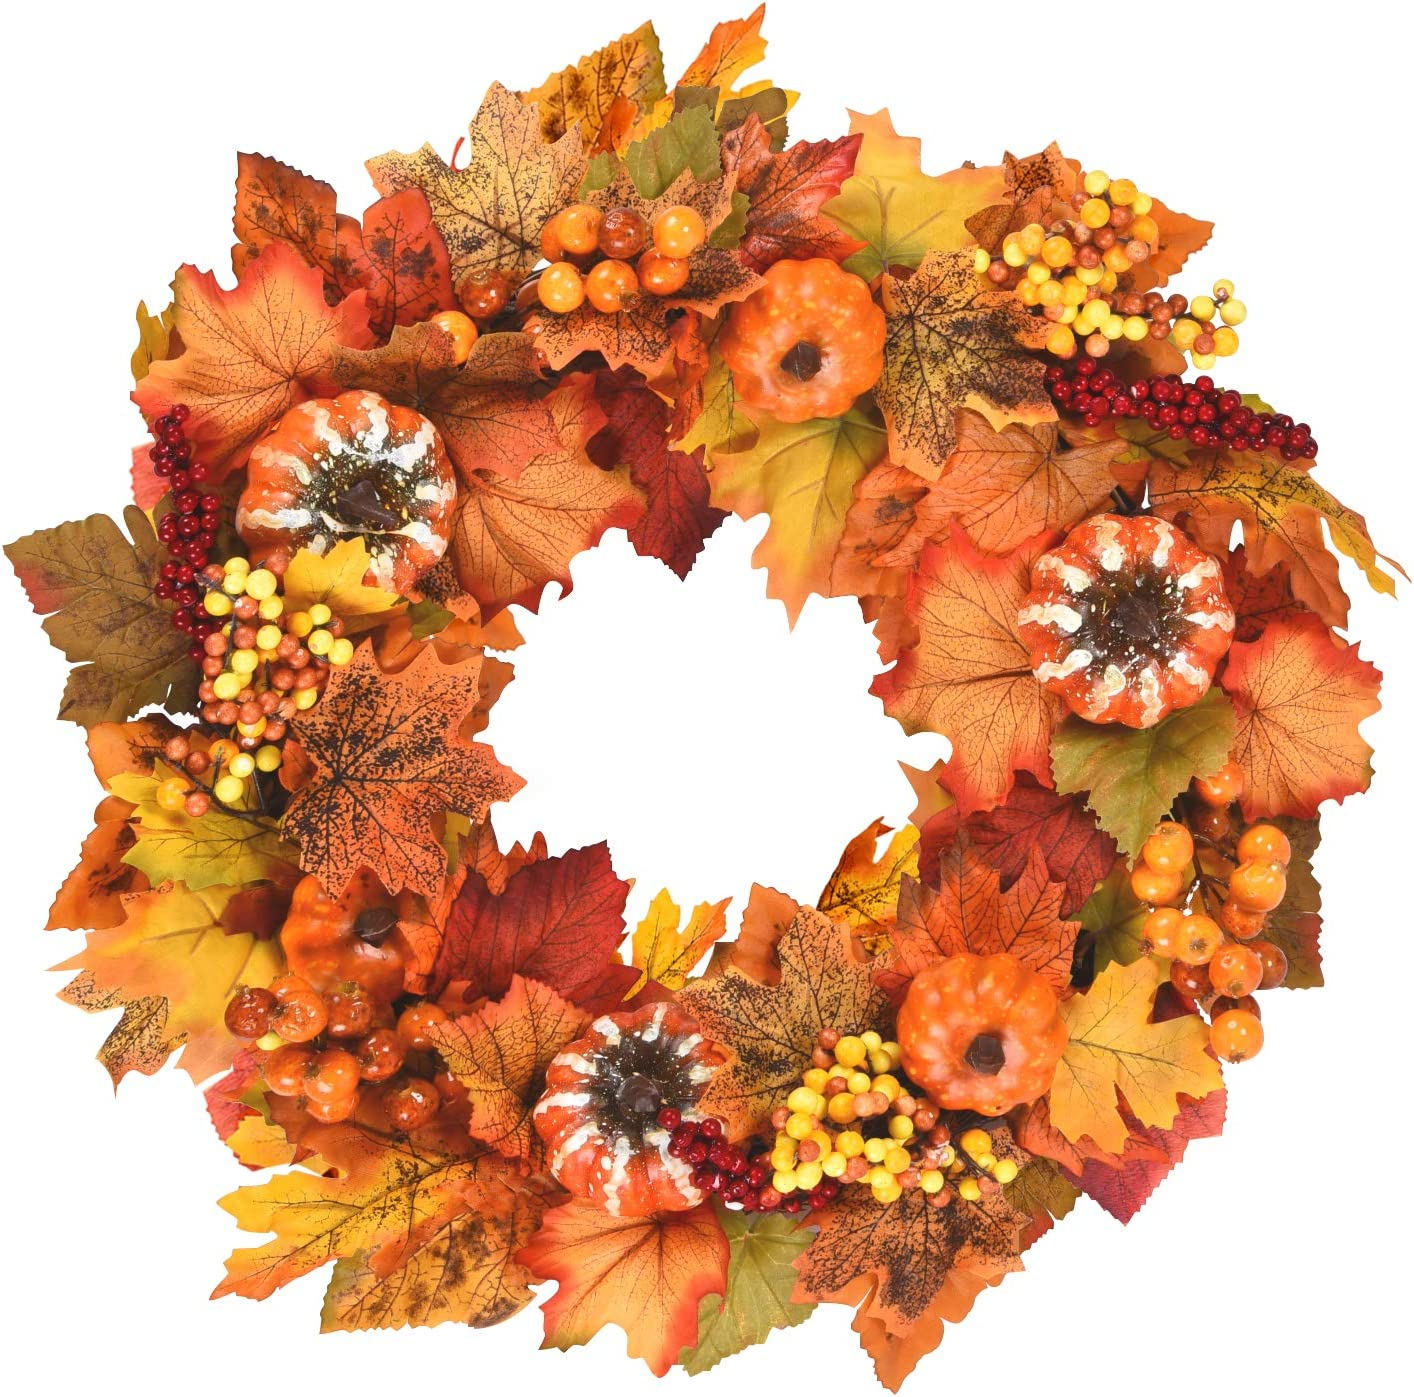 Shiny Flower Autumn Front Door Wreath Fall Wreath for Front Door Artificial Flowers Garland for Thanksgiving Day Decor